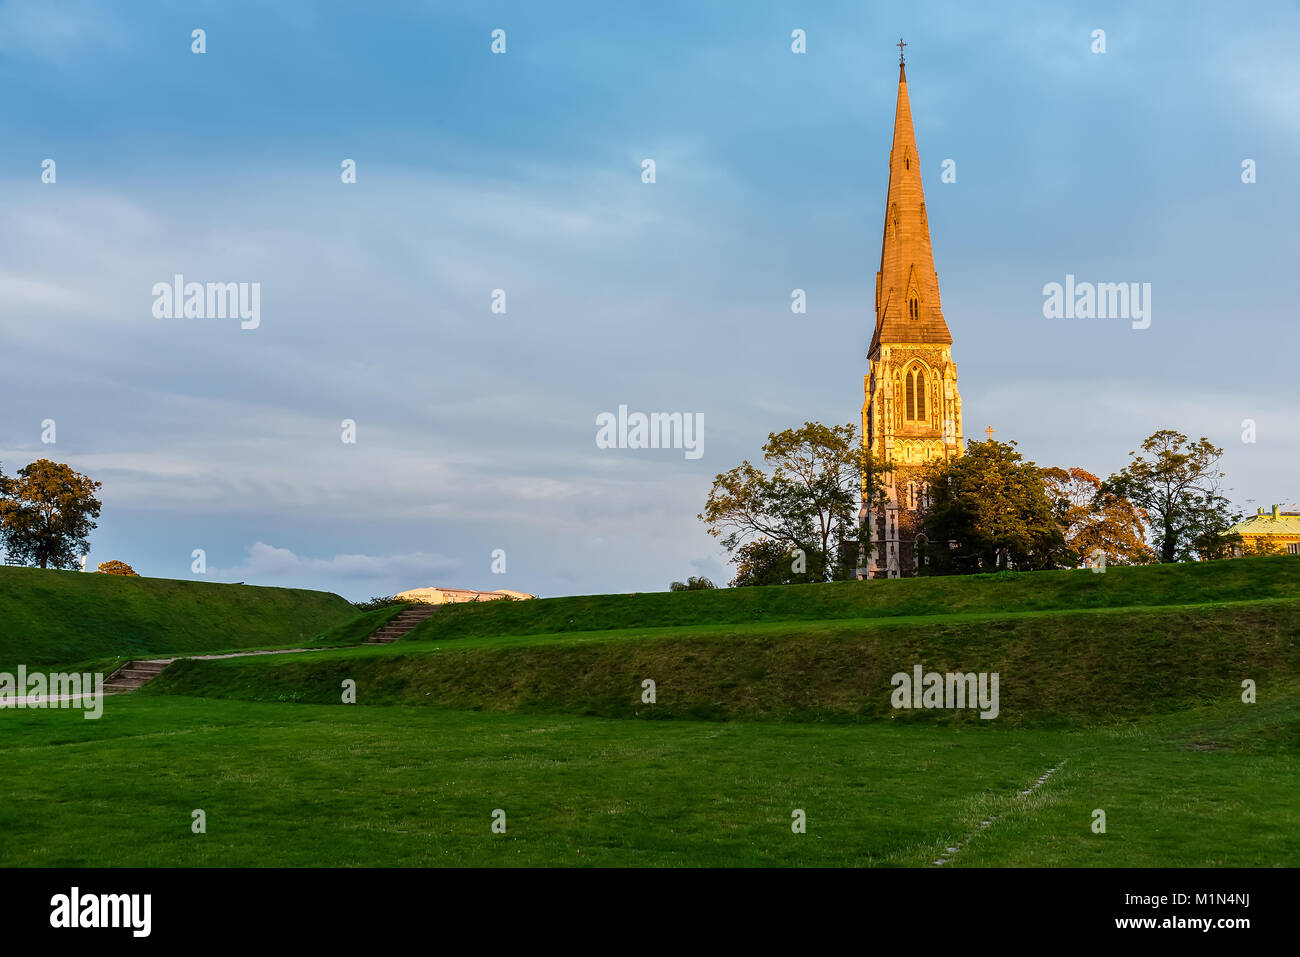 St. Alban's Church spiel colored in gold by sunset. Golden hour in Copenhagen, Denmark. - Stock Image